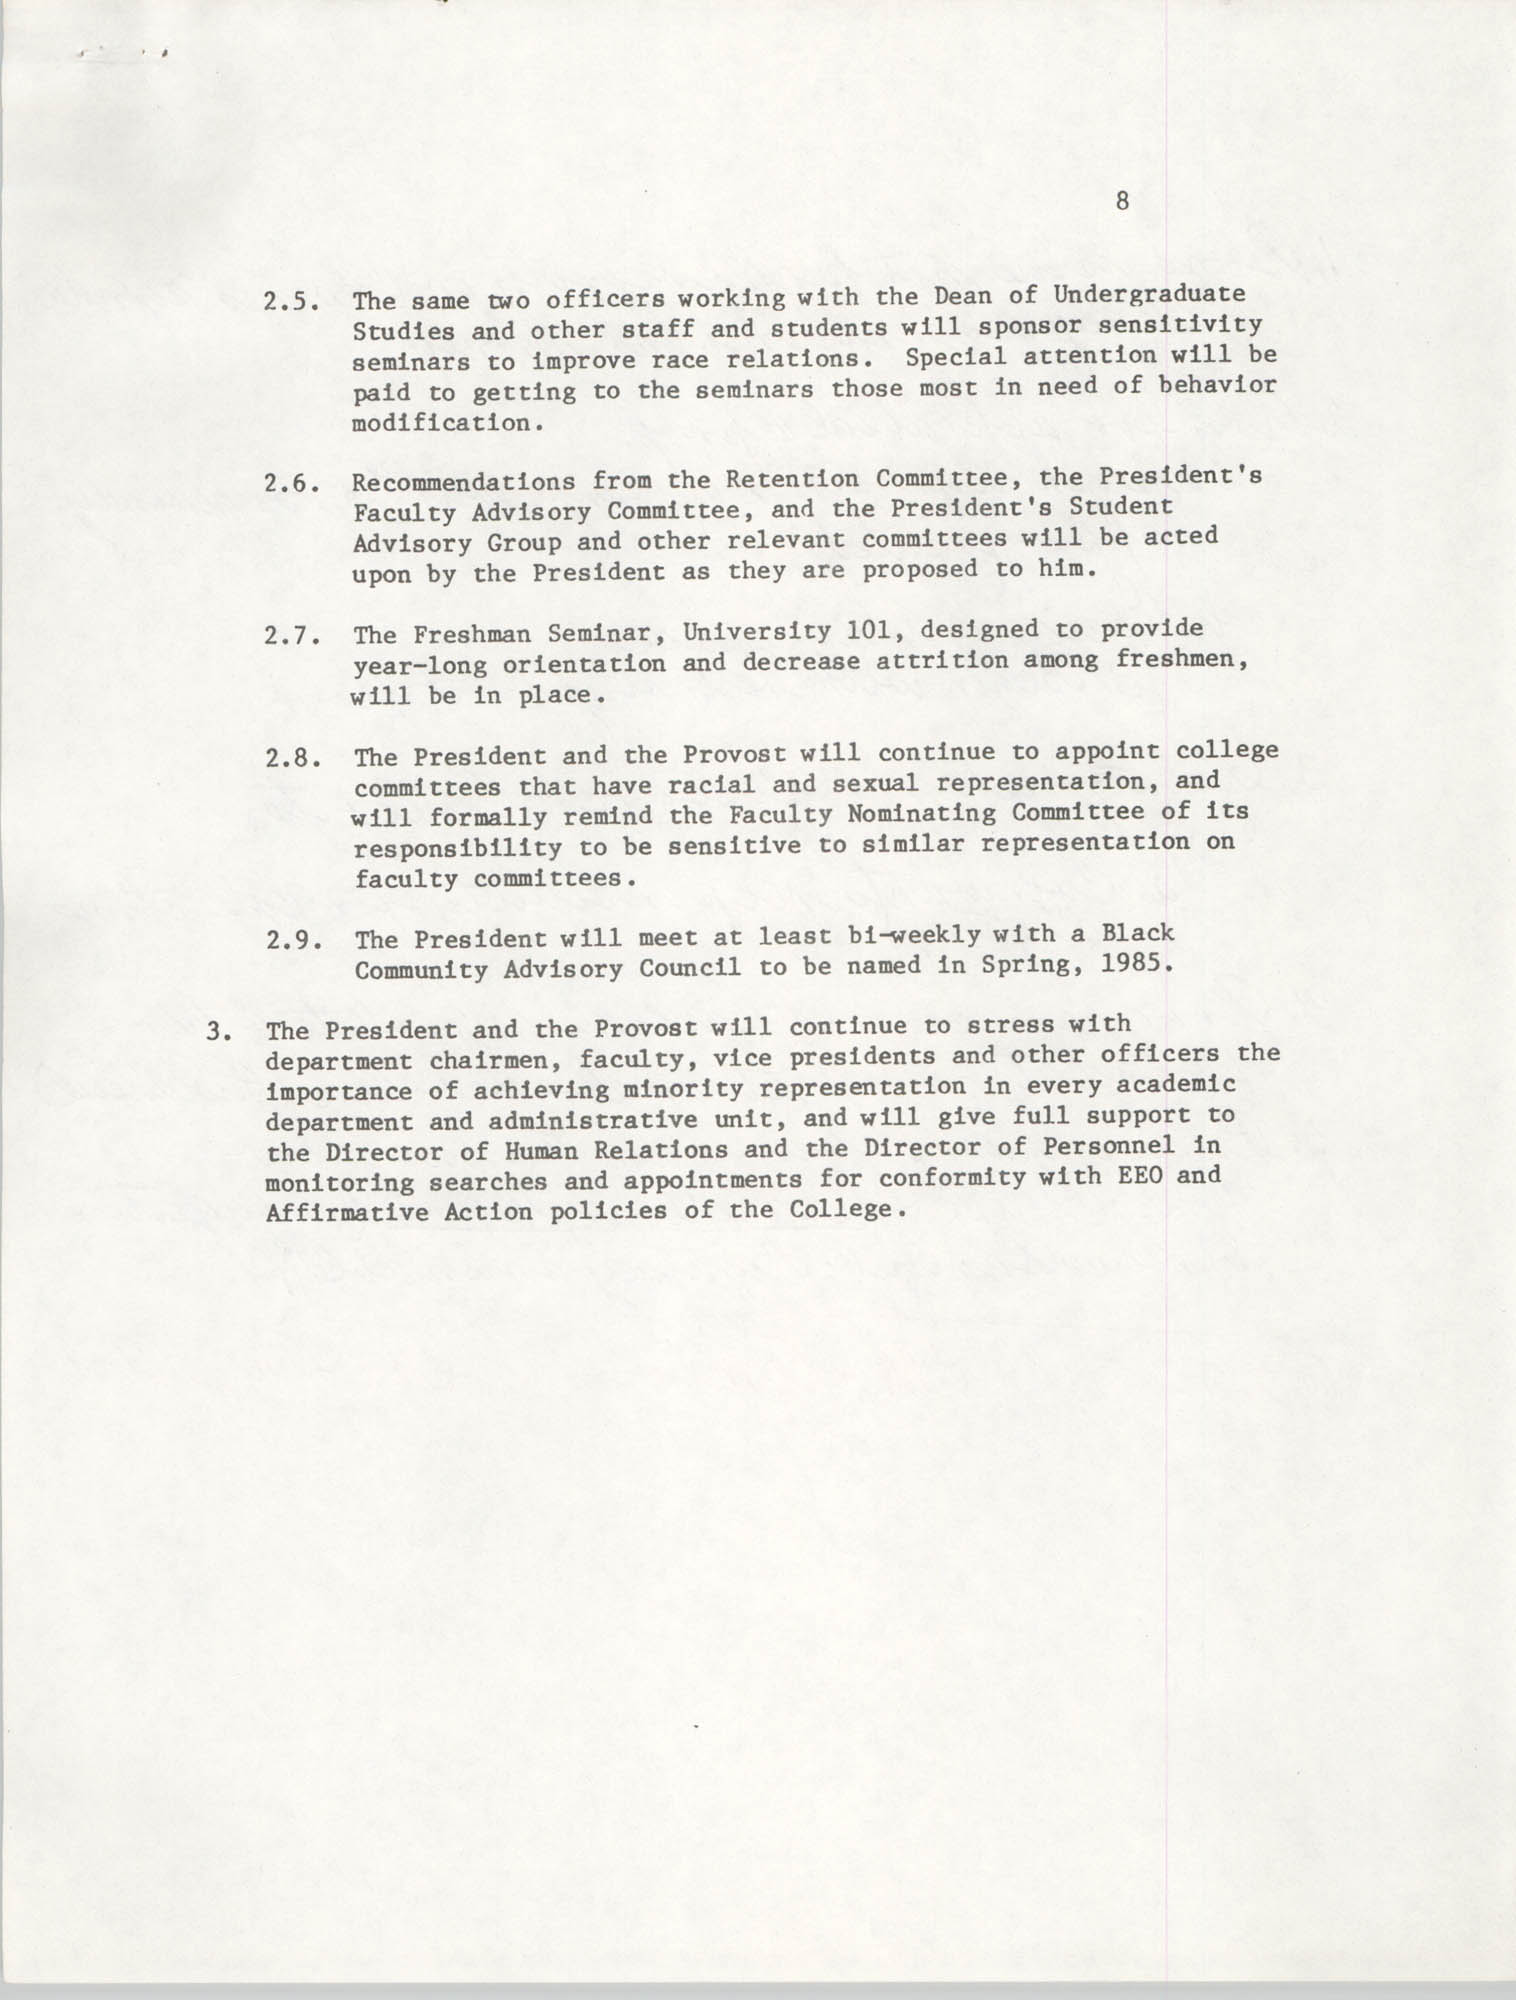 College of Charleston, Updated Summary of Desegregation Efforts, Page 8